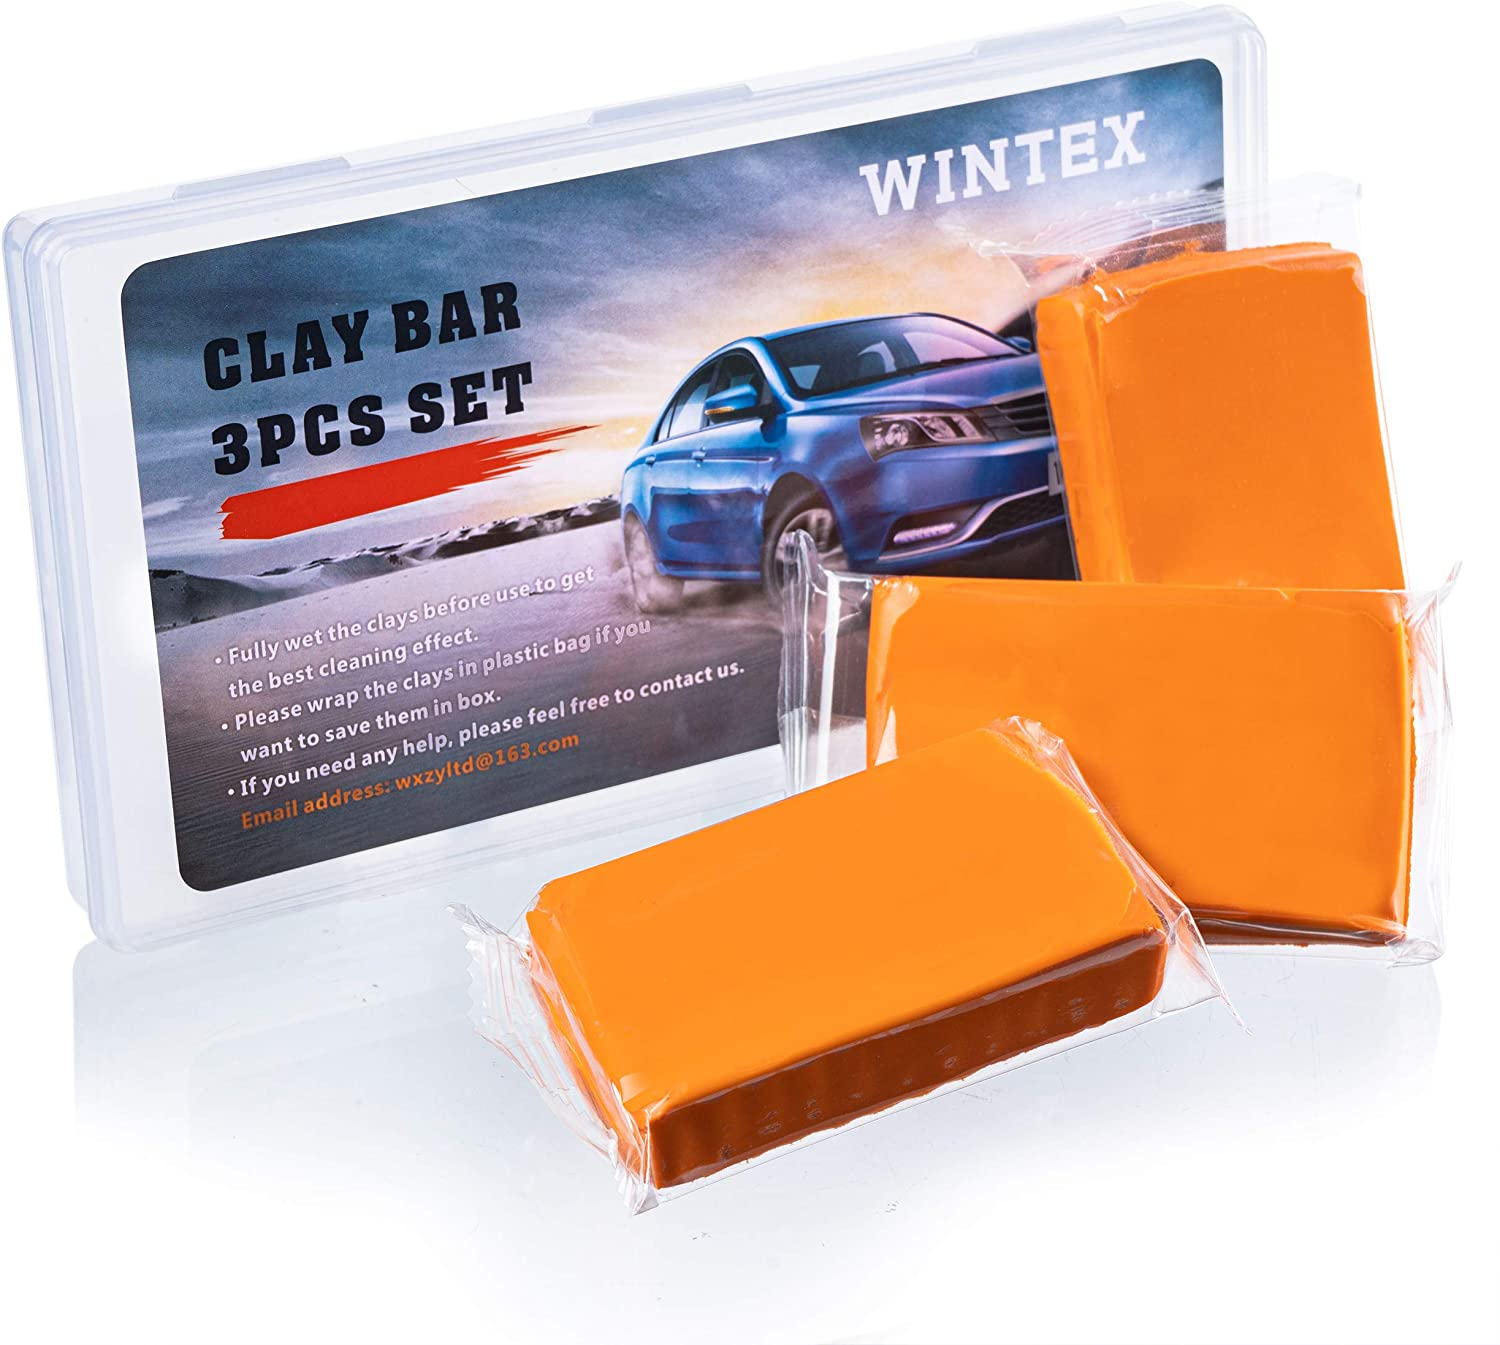 Magic Clay Bar Supplies Washing and Adsorption Capacity for Cleaning Cars Boats and Bus RV ATV WINTEX Car Clay Bar 3 Pack 100g Auto Detailing Clay Bar Premium Car Wash Cleaner with Storge Case